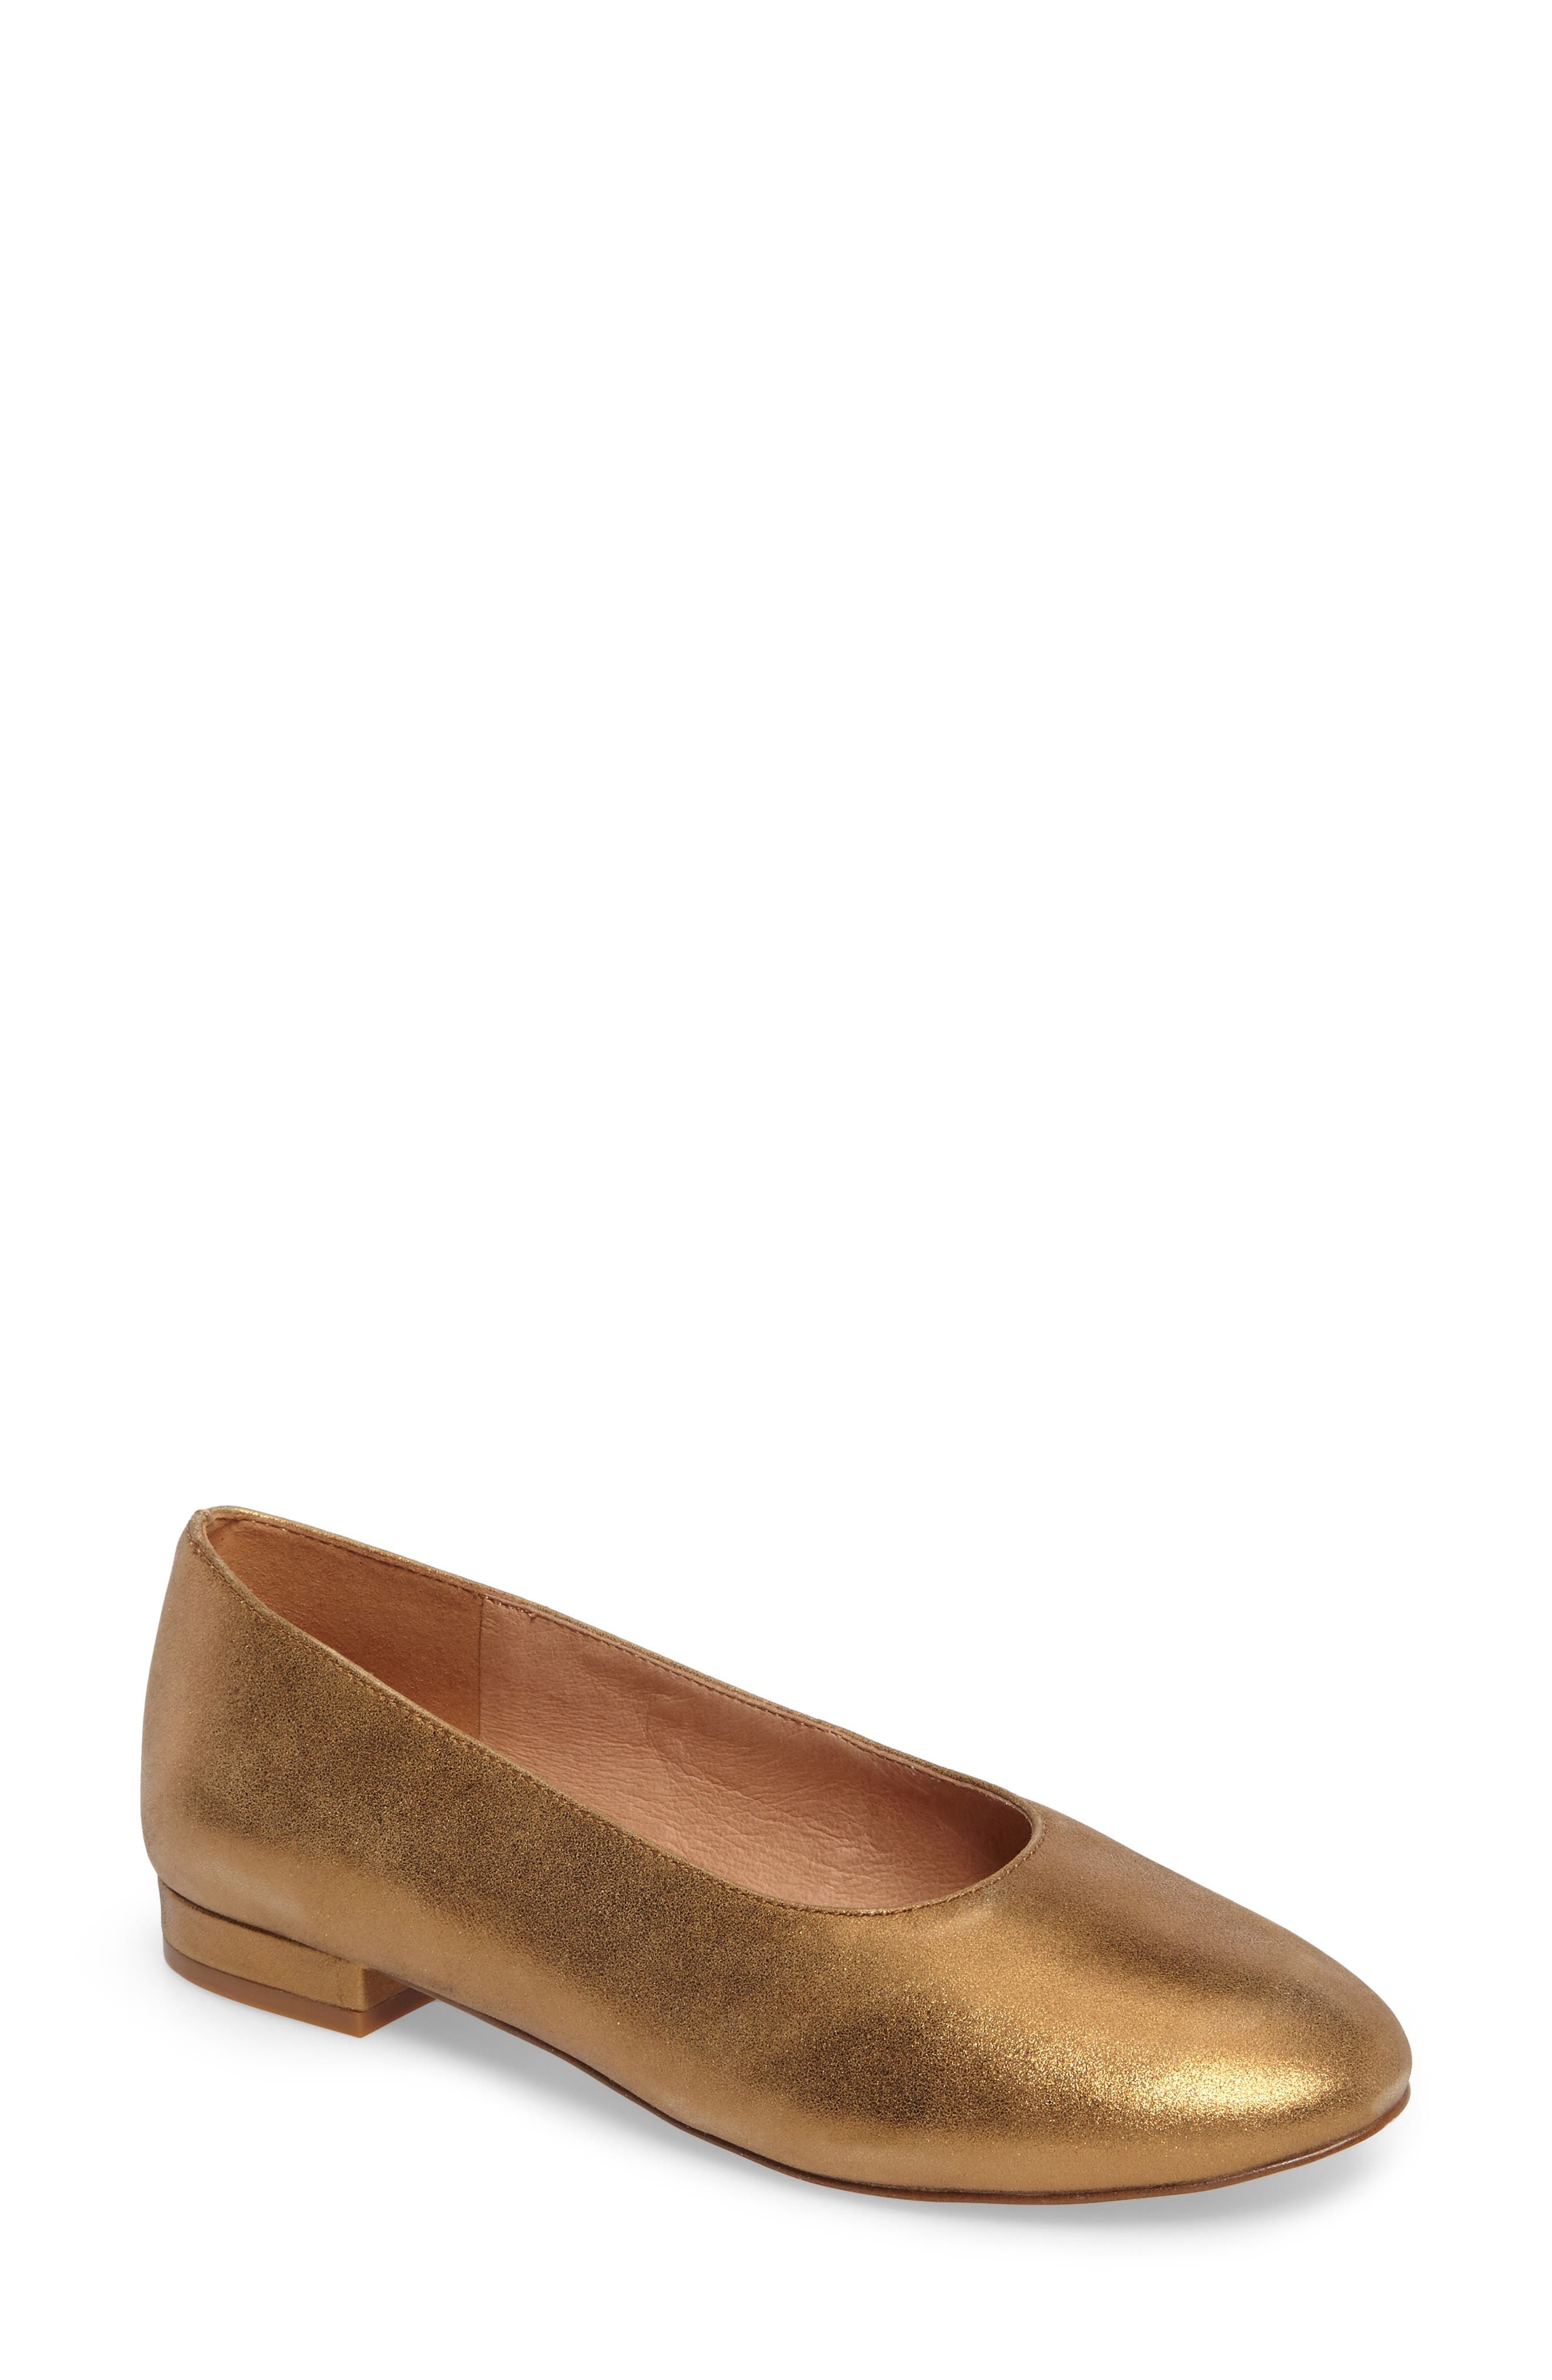 Leia Ballet Flat,                         Main,                         color, Metallic Gold Leather